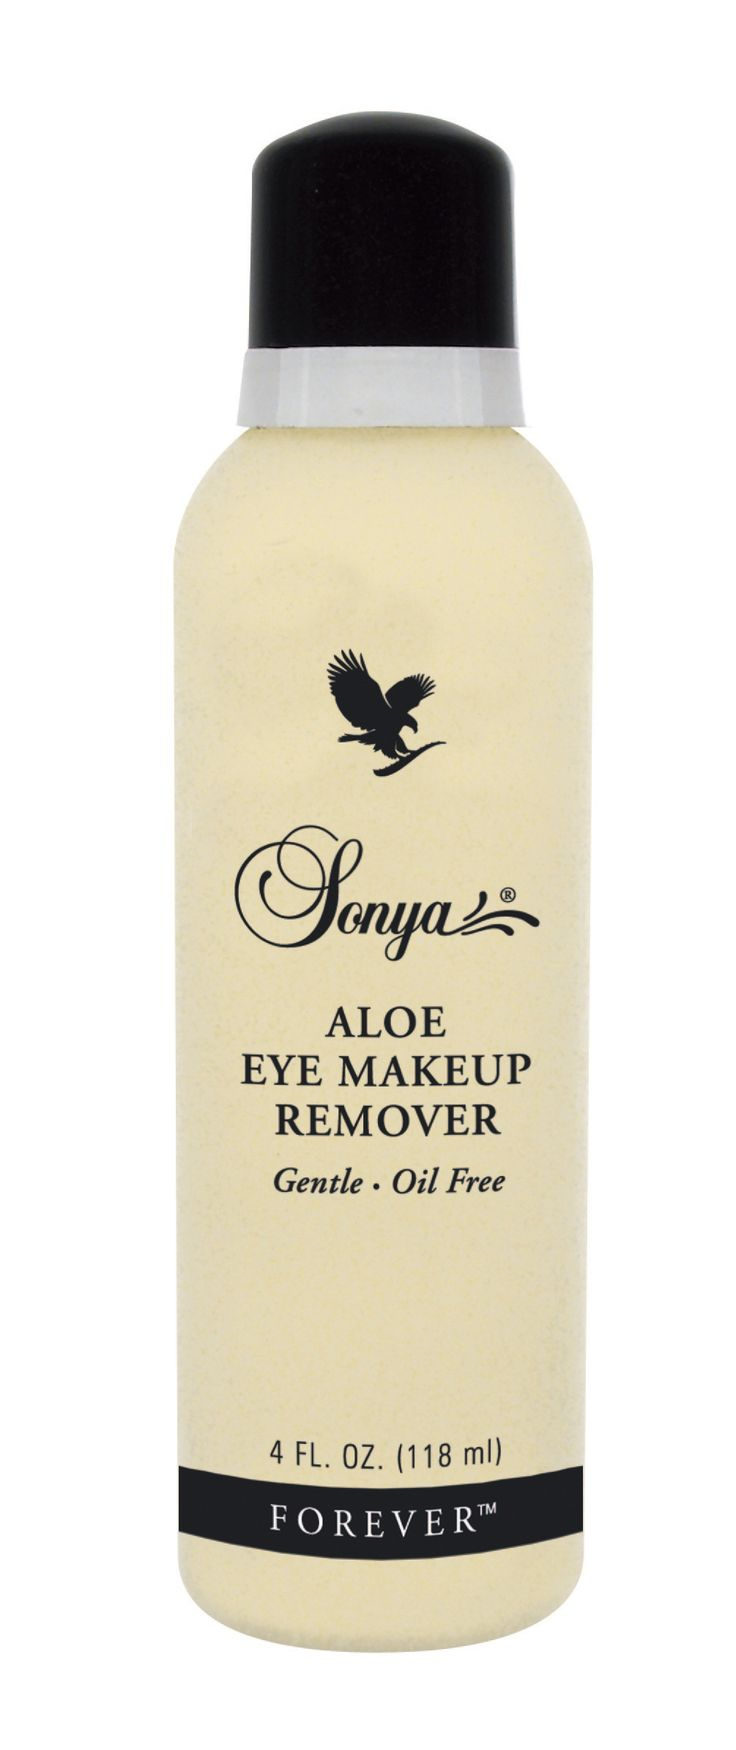 Forever Living - Aloe Eye Makeup Remover. Unique oil-free formula providing gentle yet effective removal of eye makeup, whilst conditioning and moisturising the lashes. Fresh, lighweight and leaves no residue. www.betterperformanceforever.myforever.biz/store